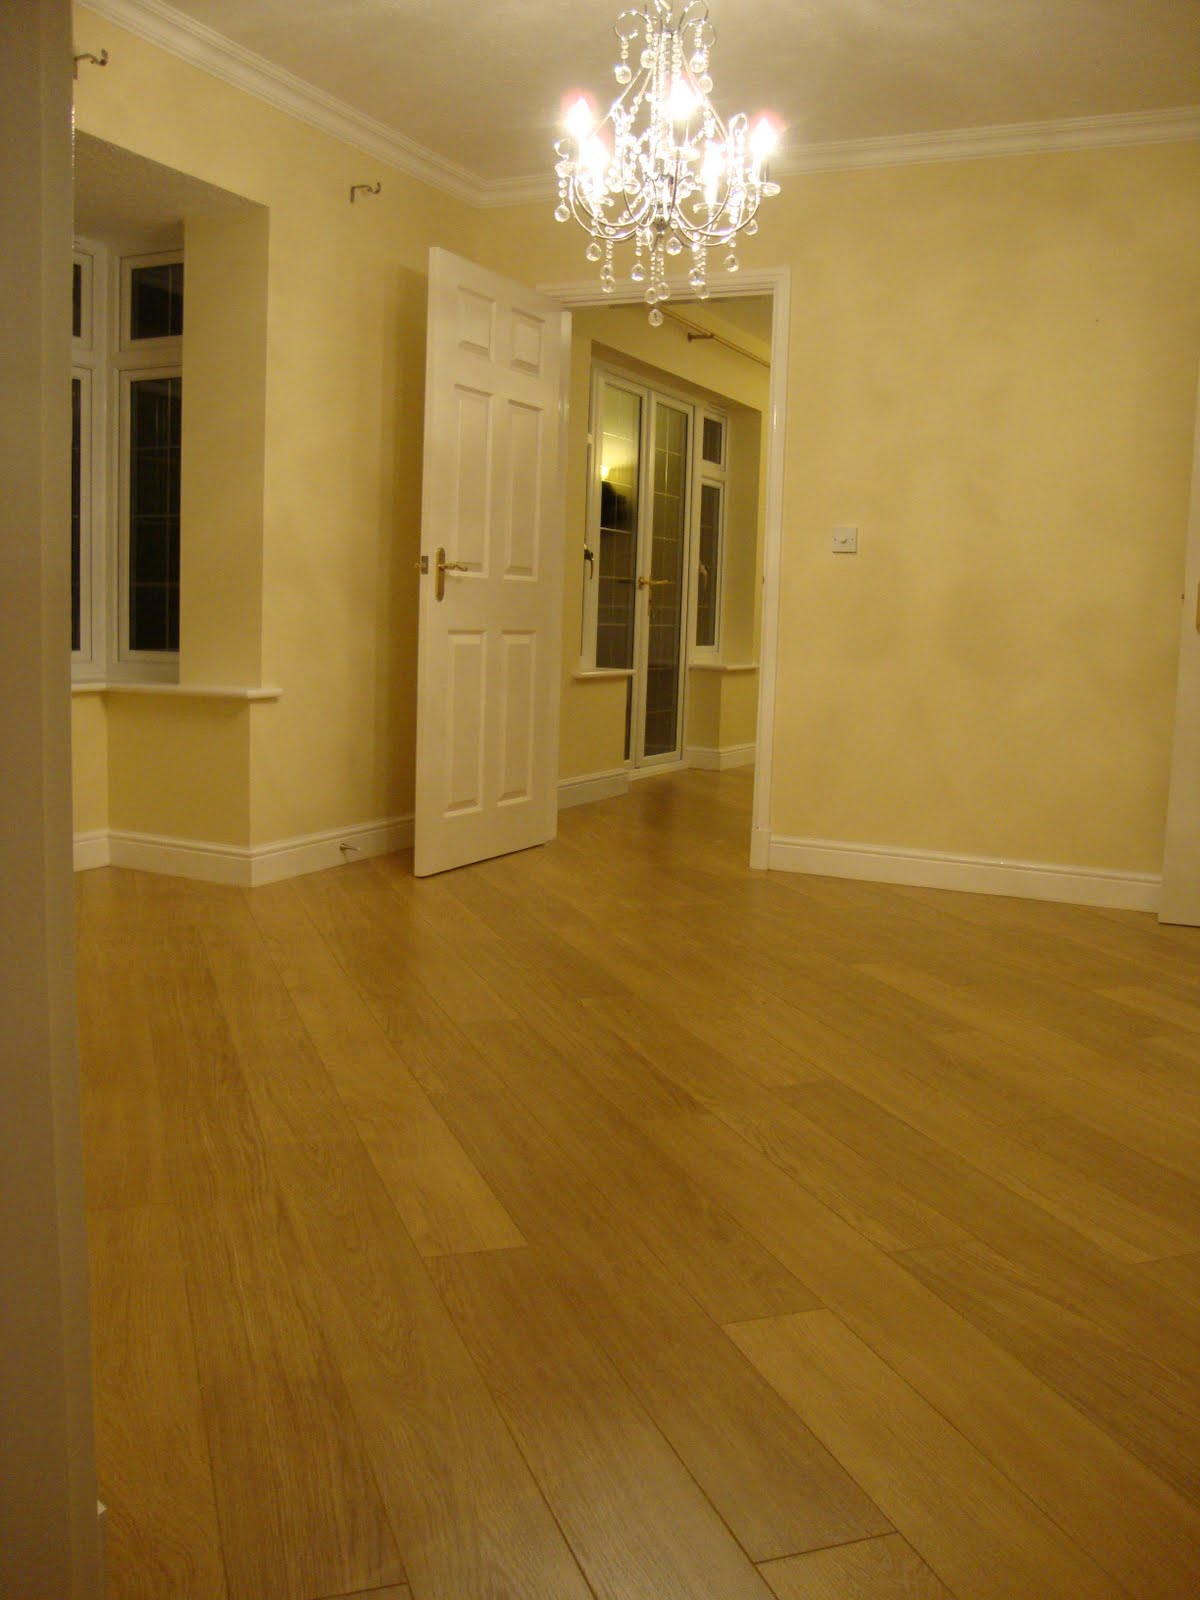 The Work Took 3 Days To Complete Including All Skirtings Replaced